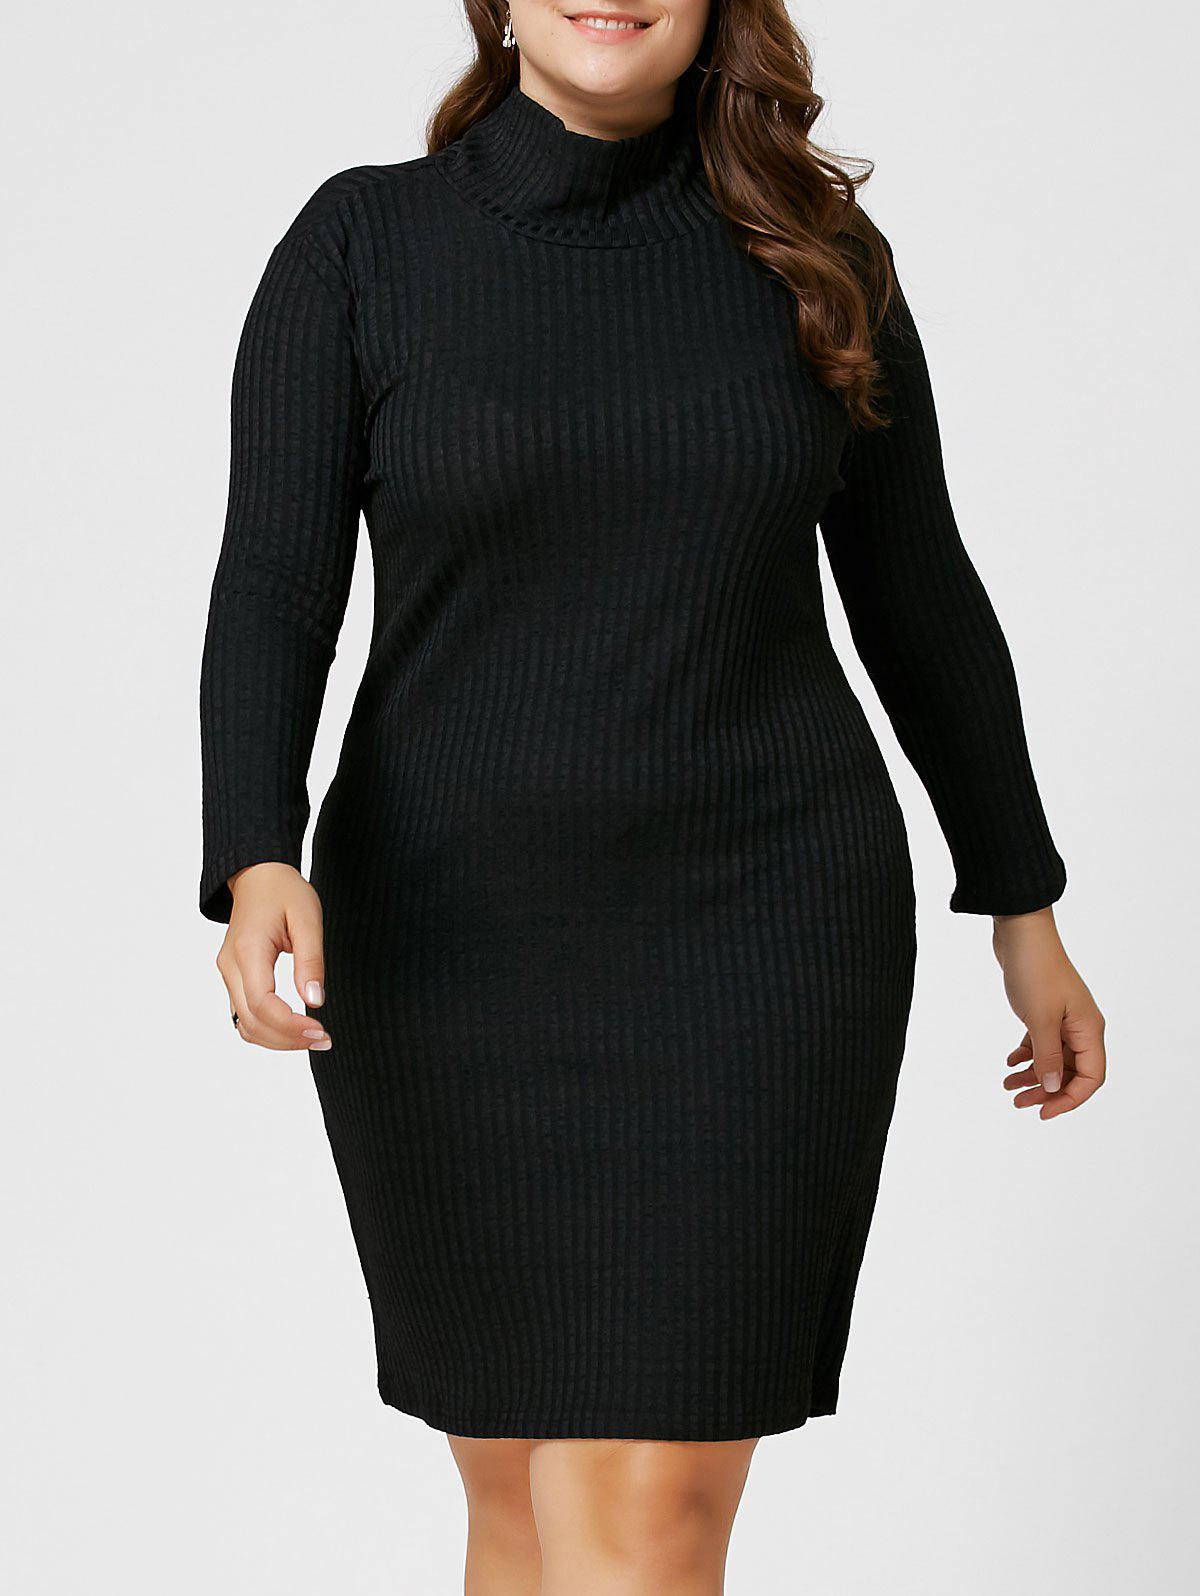 Plus Size Ribbed Sheath Turtleneck Sweater Dress elegant a line round button midi skirt for women